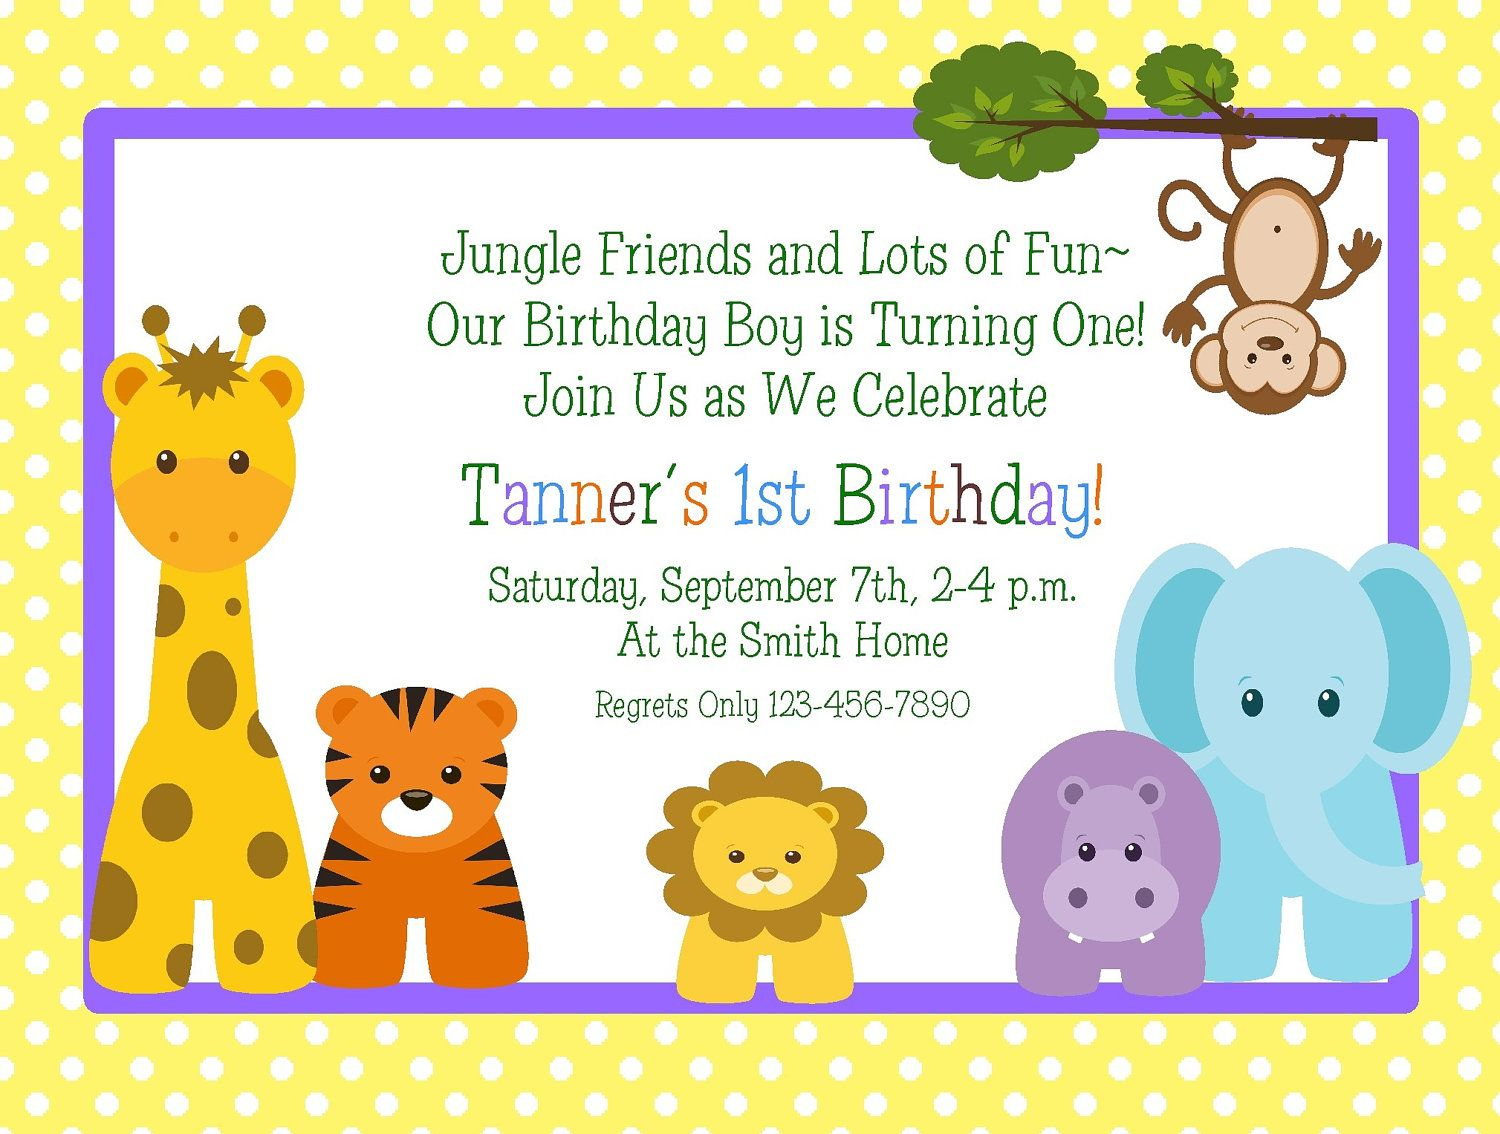 Spectacular Showy Birthday Invitation Animal Picture Cards With An ...